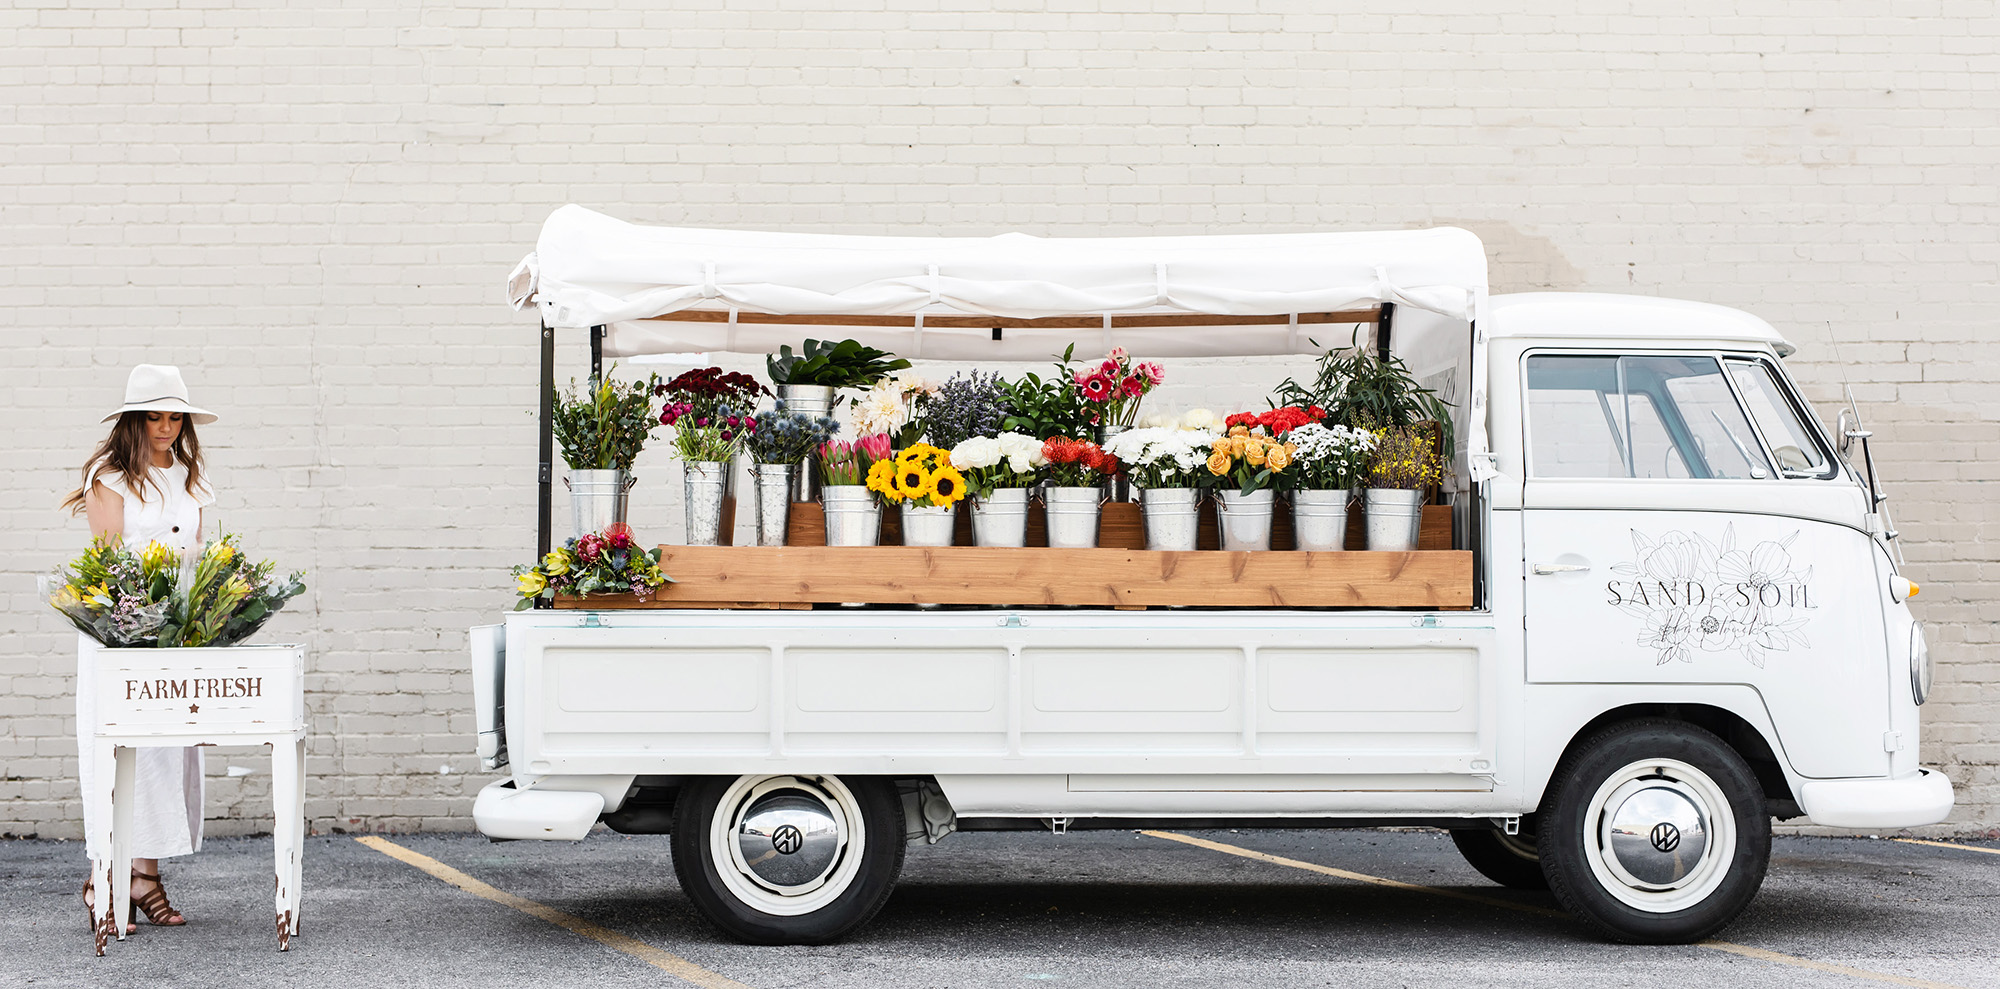 Sand and Soil Flower Truck by Monika Normand Photography